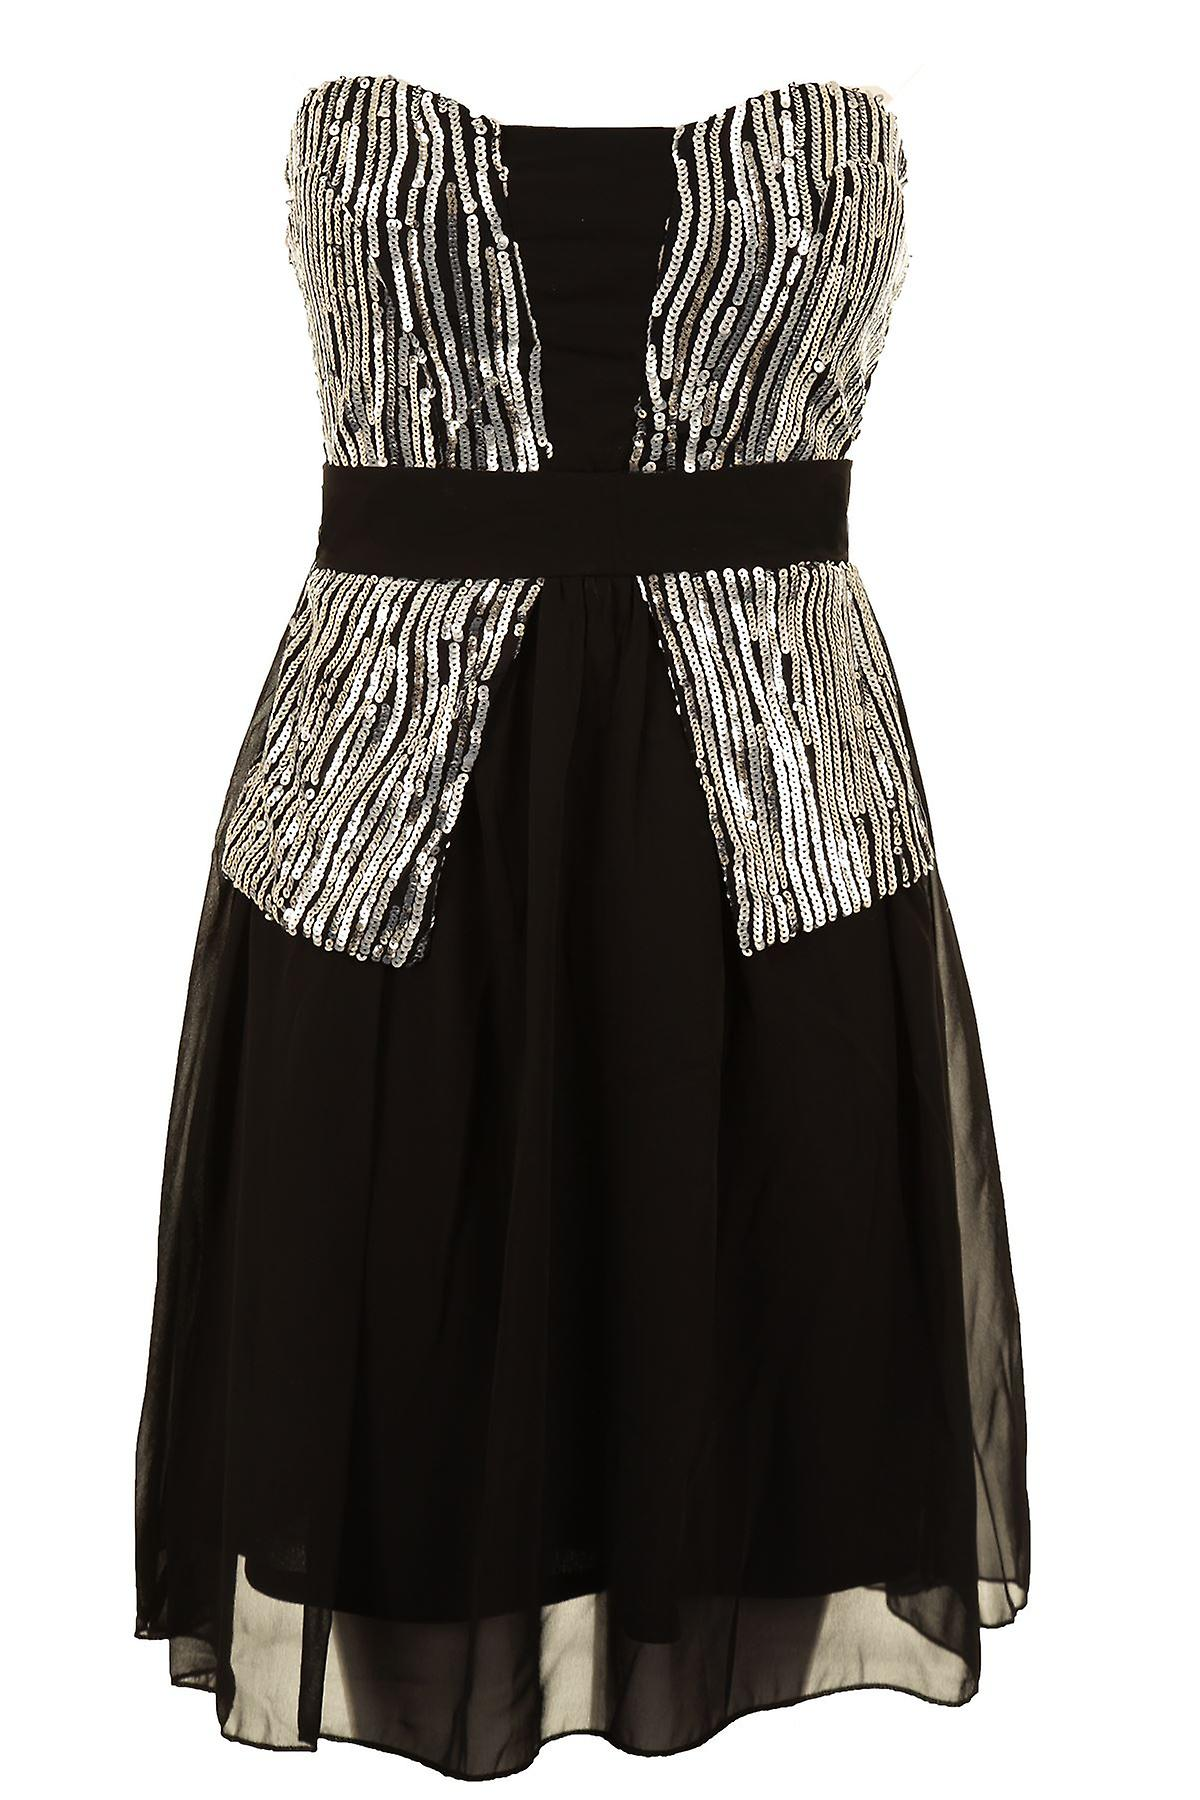 Ladies Gold Sliver Sequin Chiffon Lined Bustier Stretch Back Women's Dress